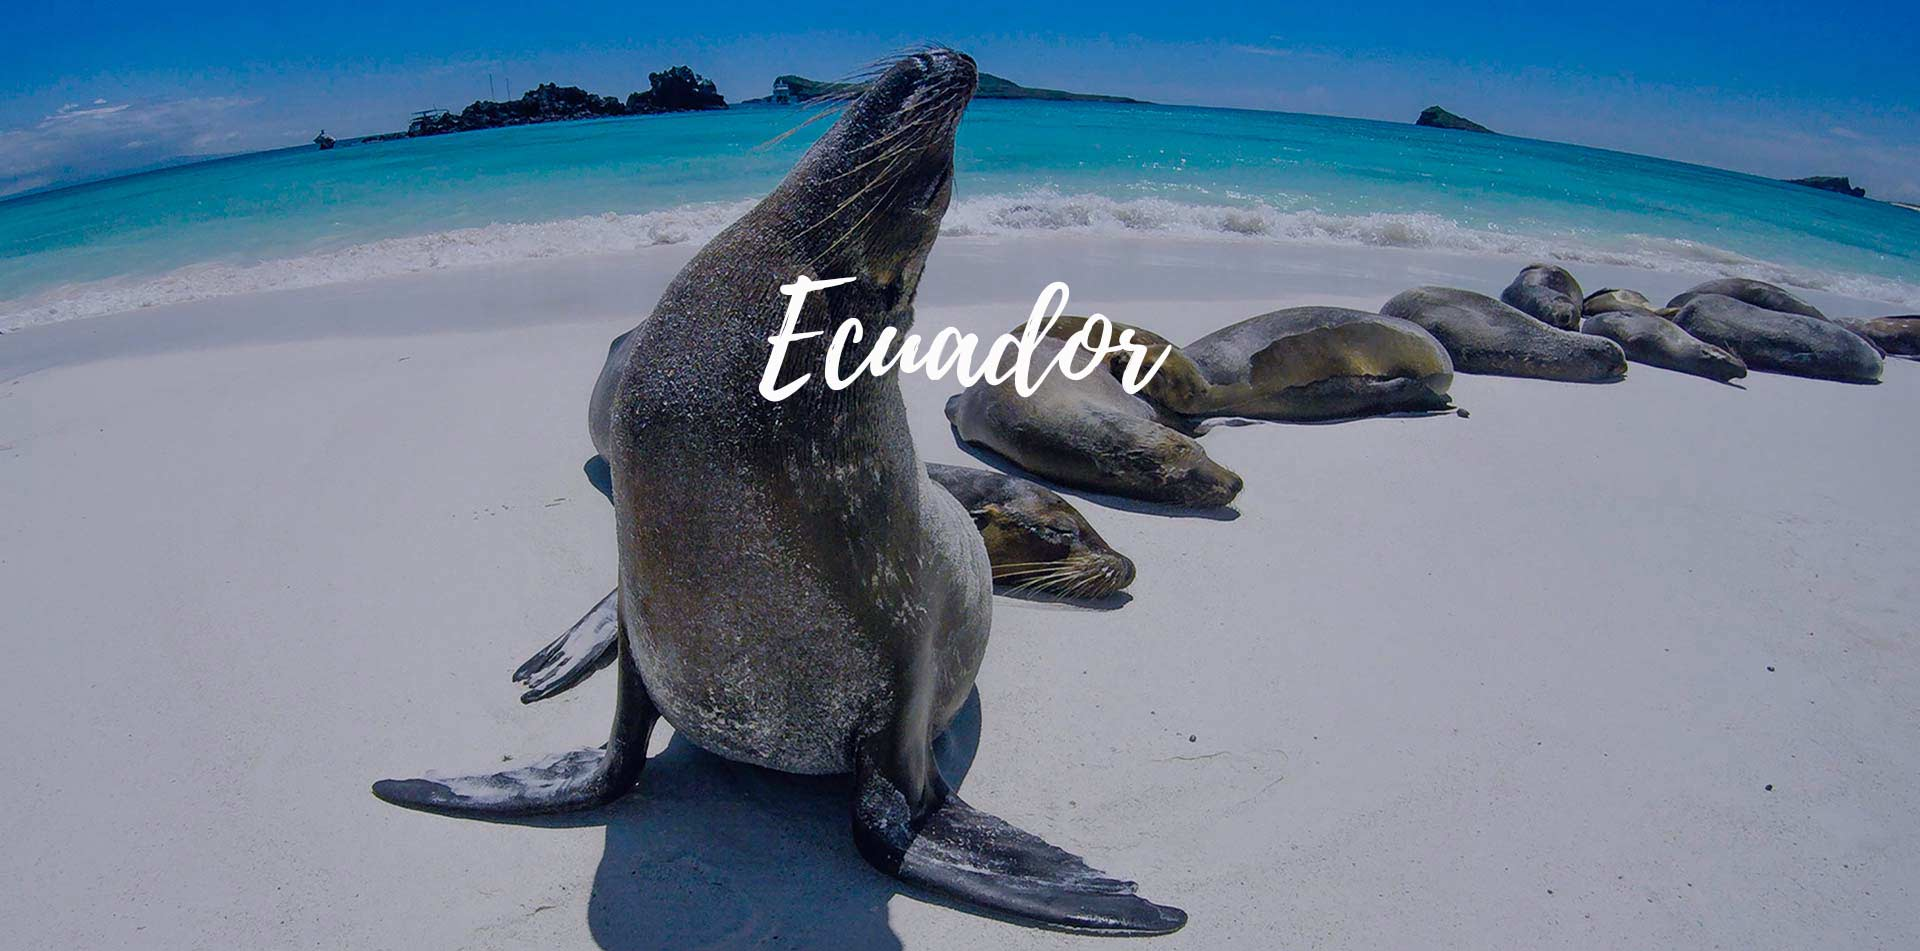 South America Ecuador Galapagos Islands sea lions sunbathing on scenic white sand beach - luxury vacation destinations